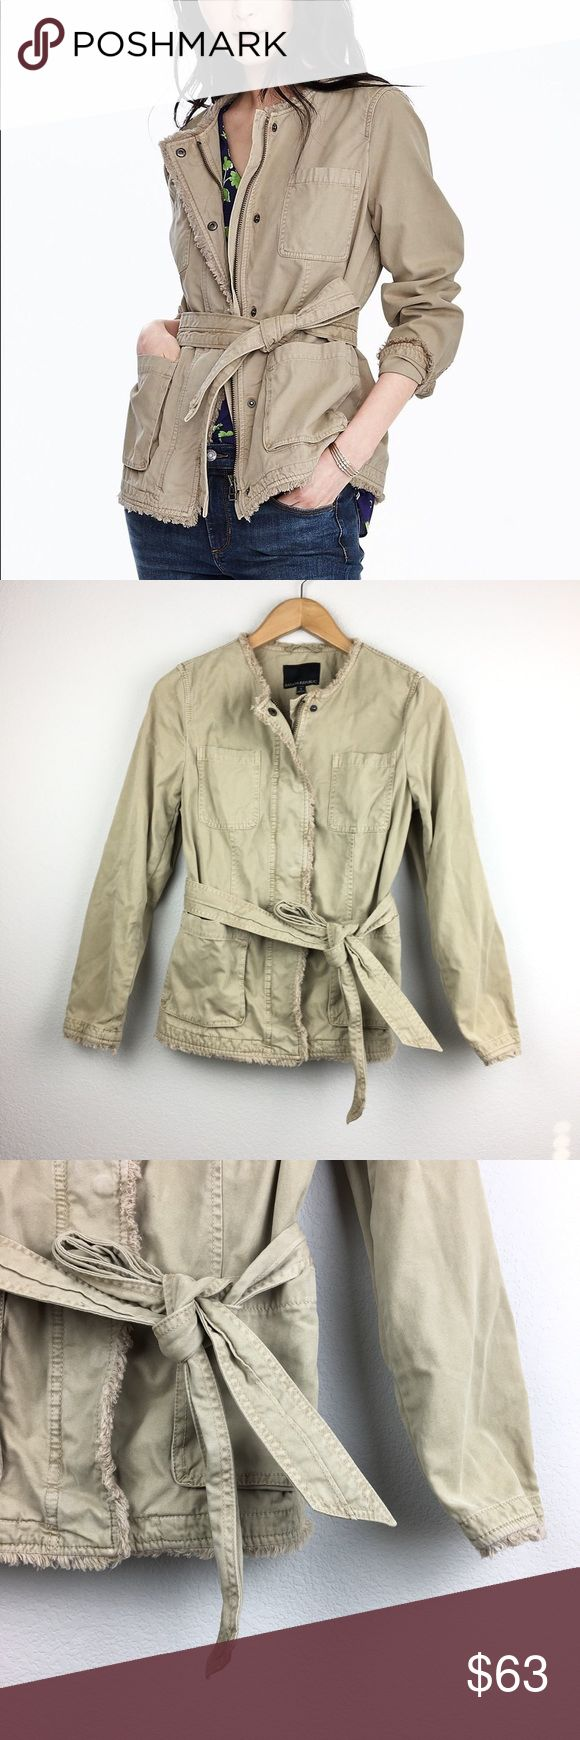 Banana Republic Tan Frayed Edge Military Jacket 100% cotton. Mid-weight fabric. Tan/khaki color. Zippered front with snap closure. Frayed edge detailing. Tie at waist. Open chest and front pockets. Excellent pre-owned condition. Banana Republic Jackets & Coats Utility Jackets